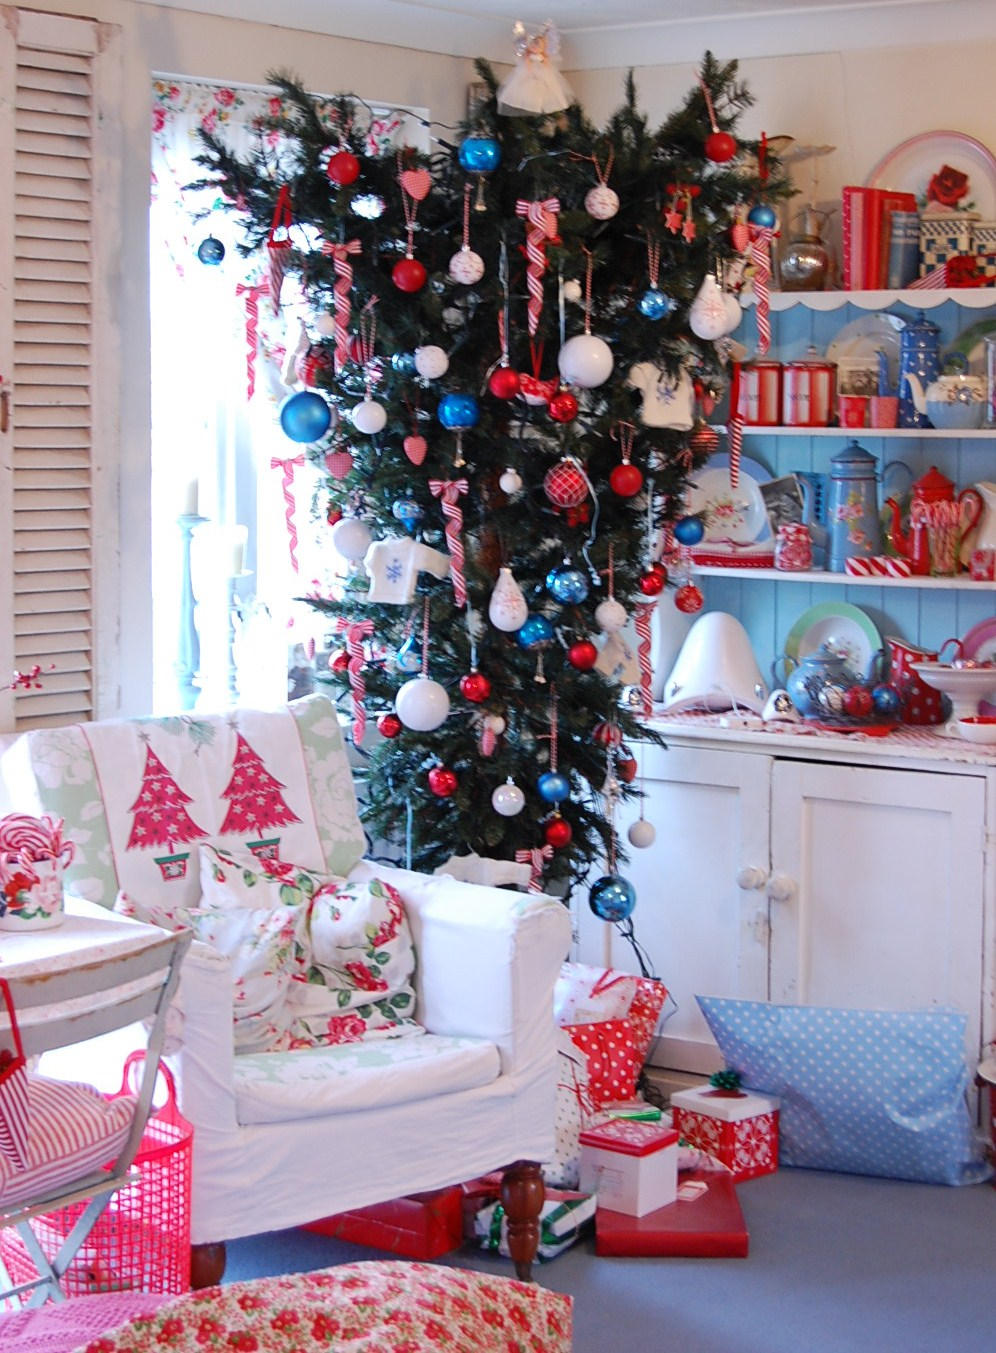 Upside Down Christmas Tree Decorating Ideas.The Eccentric Upside Down Christmas Tree Pt 2 Home